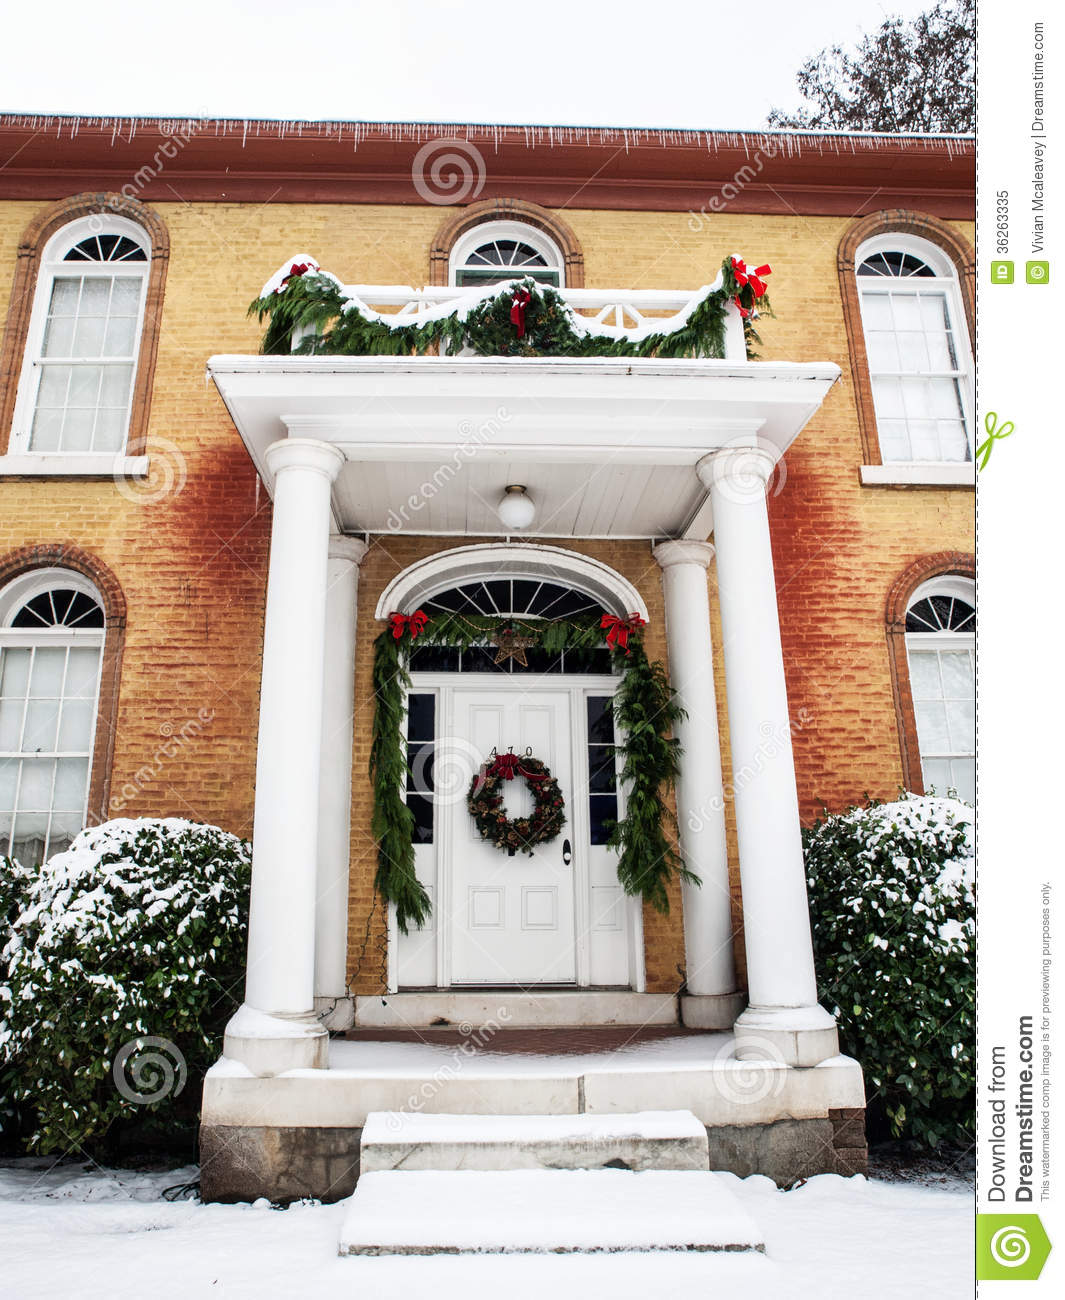 Christmas Decorations For Victorian Homes: Historic Home With Christmas Decorations Royalty Free